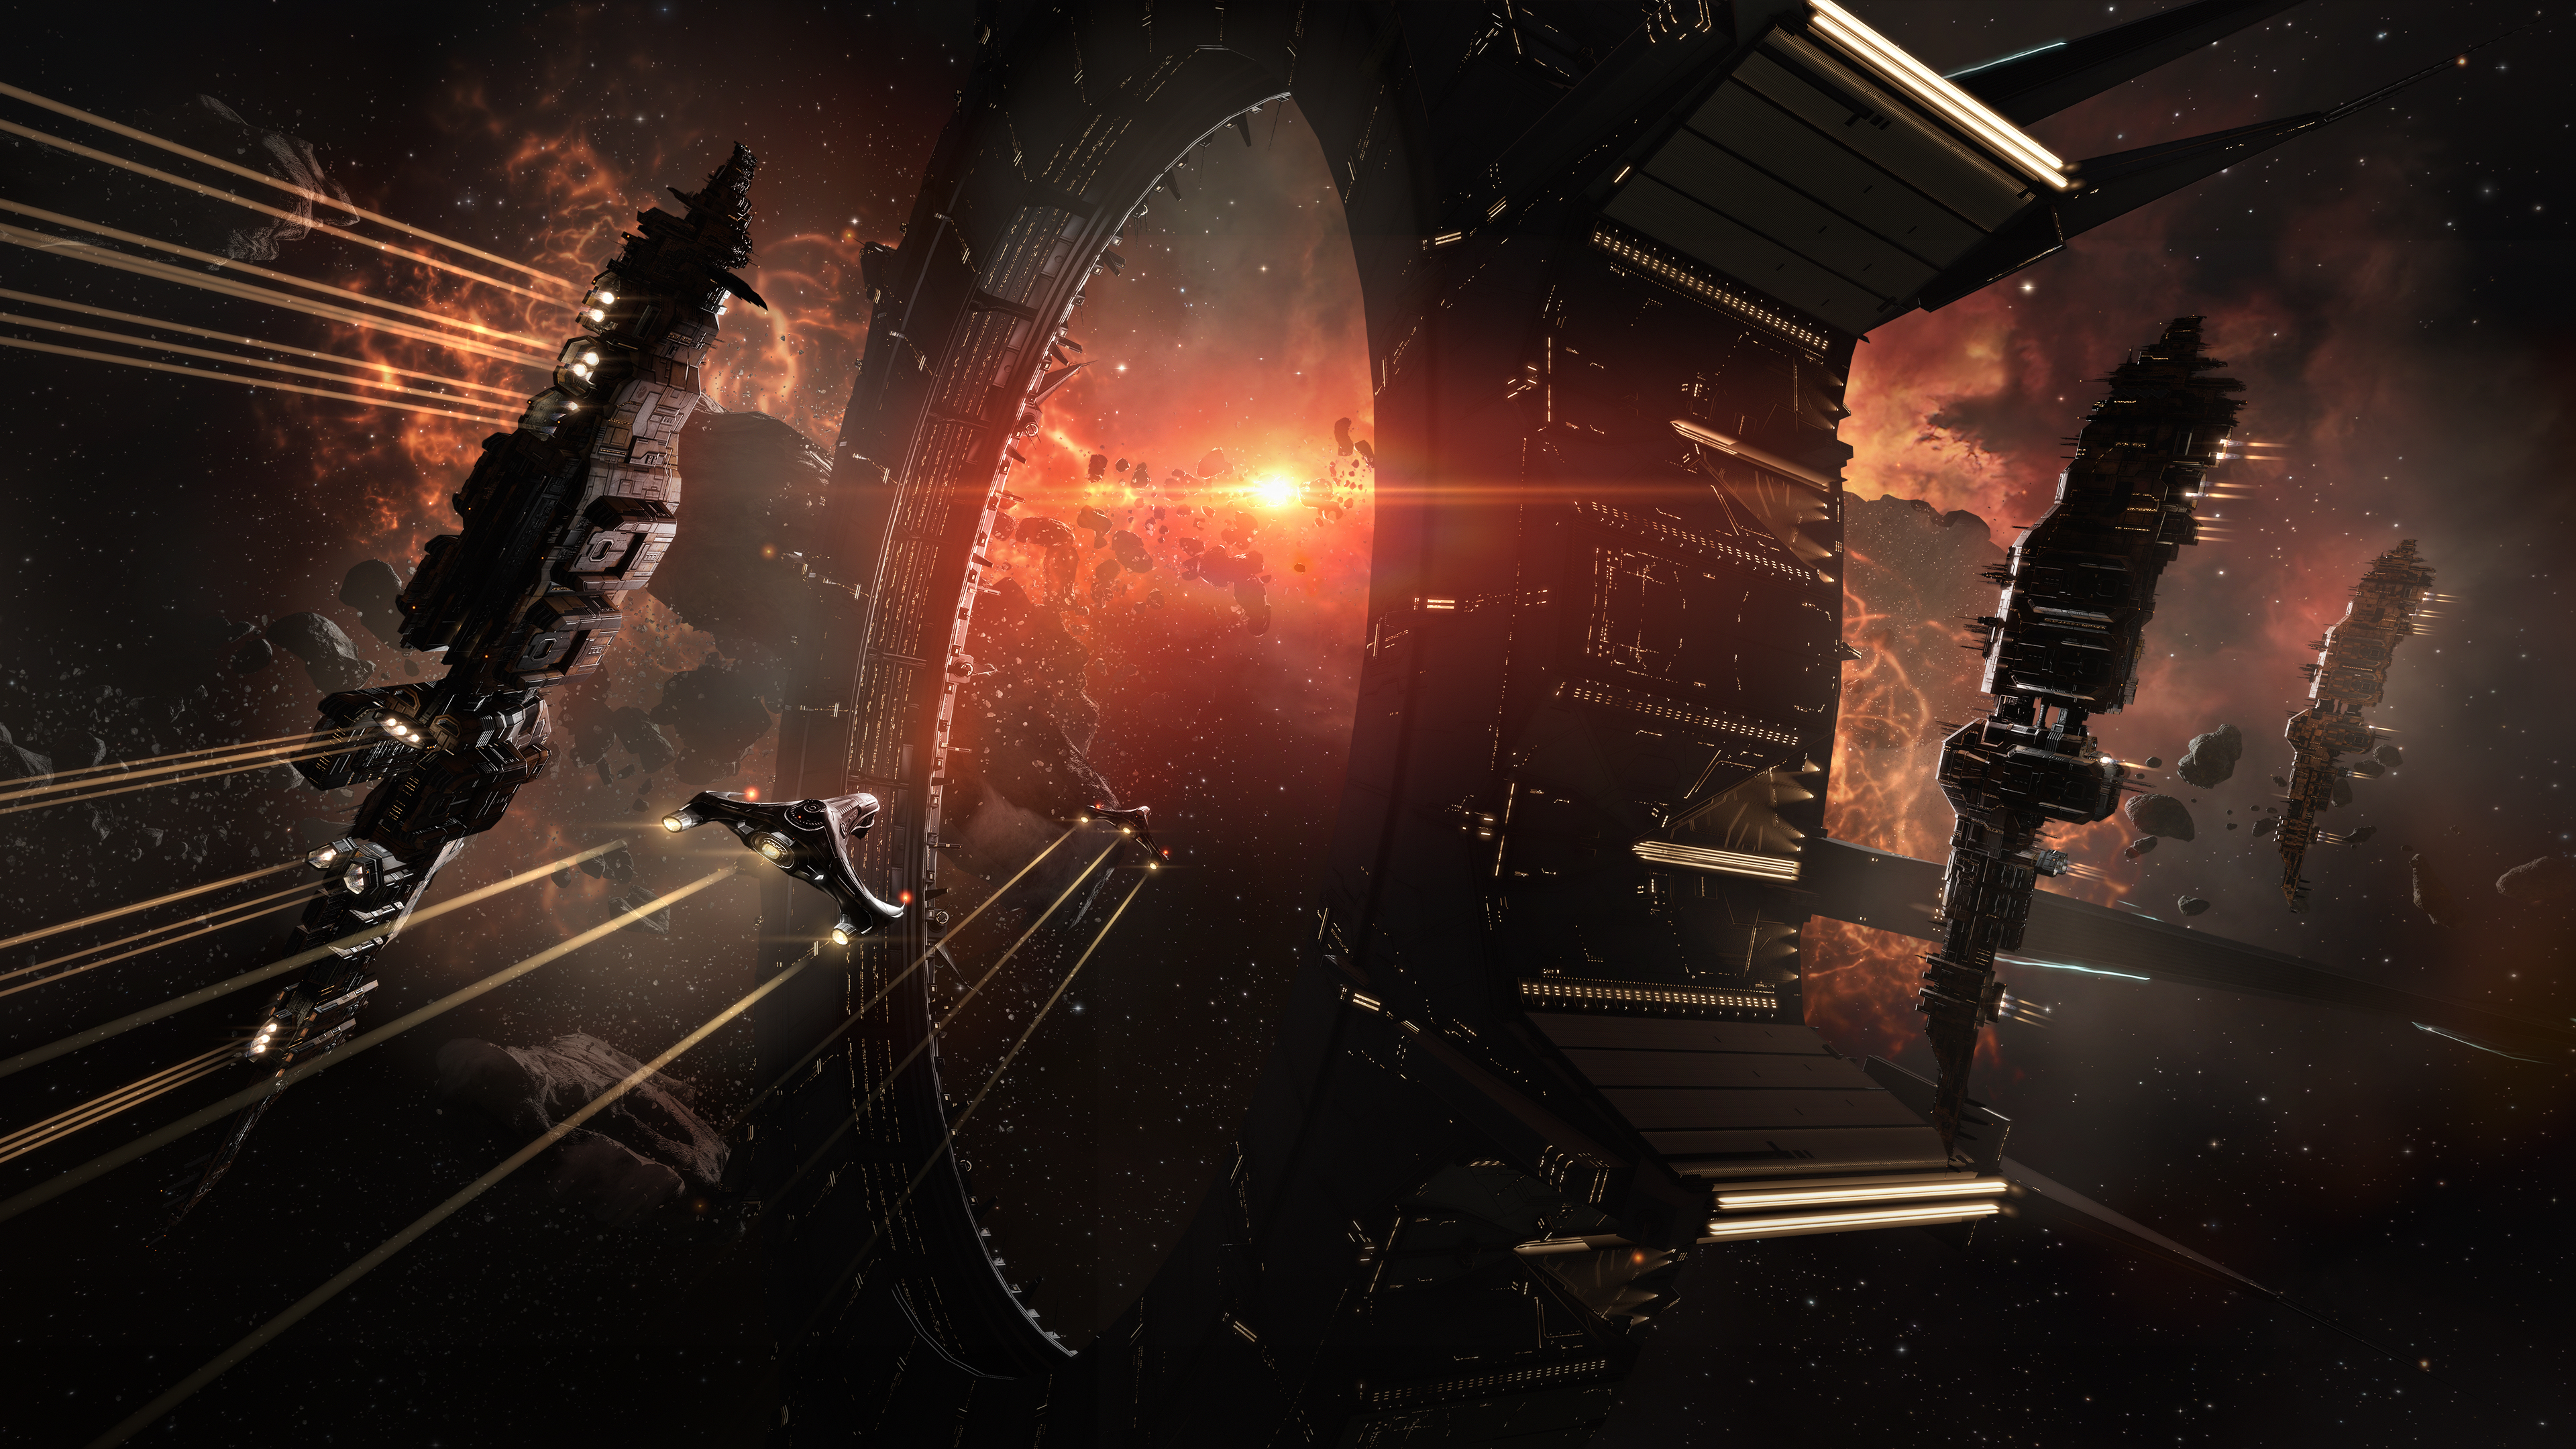 EVE North 2019: A huge battle once broke out in EVE Online, but not